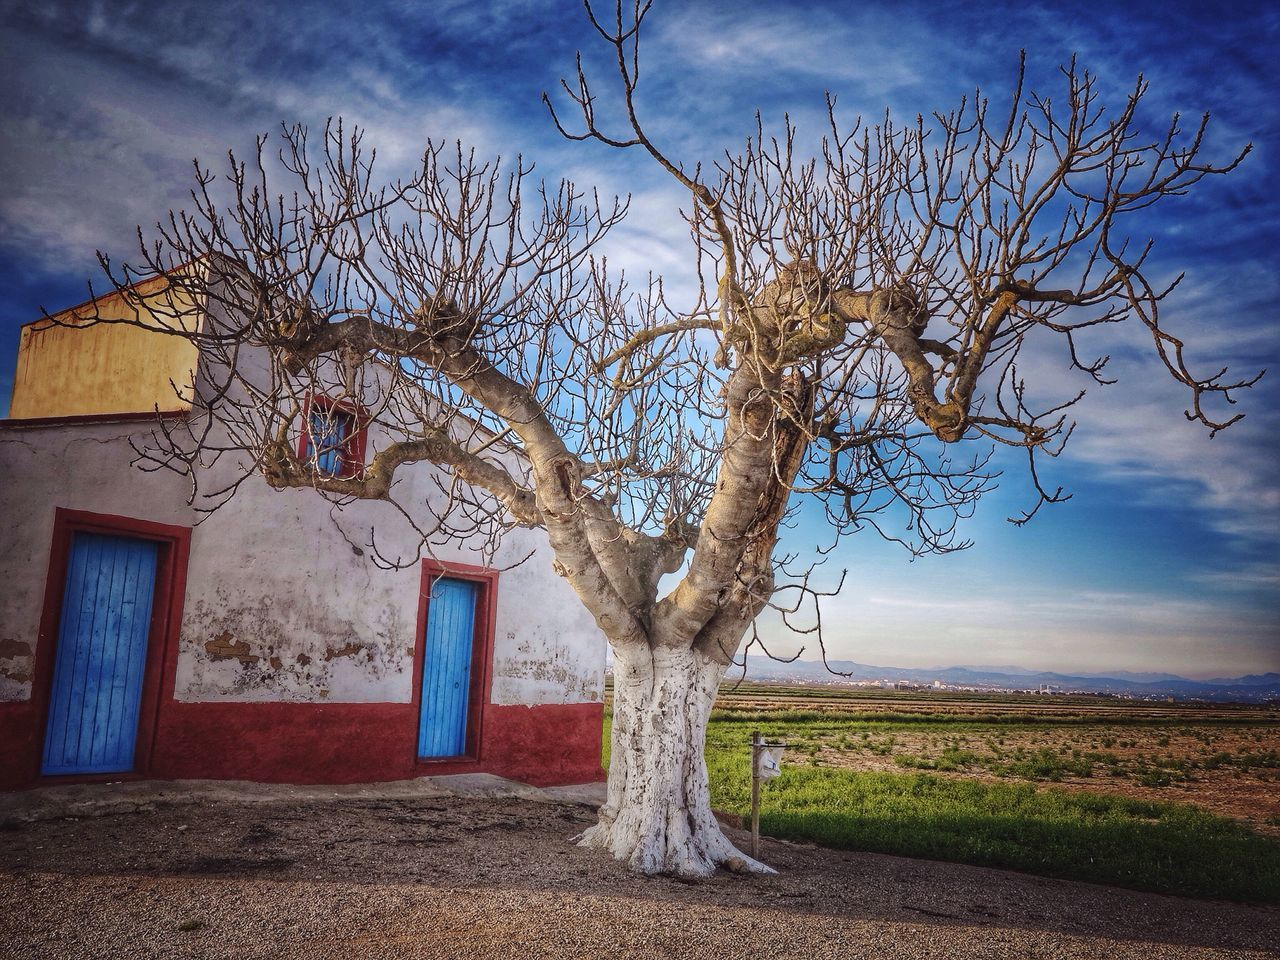 EyeEmNewHere Nature Beauty In Nature Nature_perfection Built Structure Building Exterior Cottage Scène Rurale Tree Bare Tree Branch Tranquility Tranquil Scene